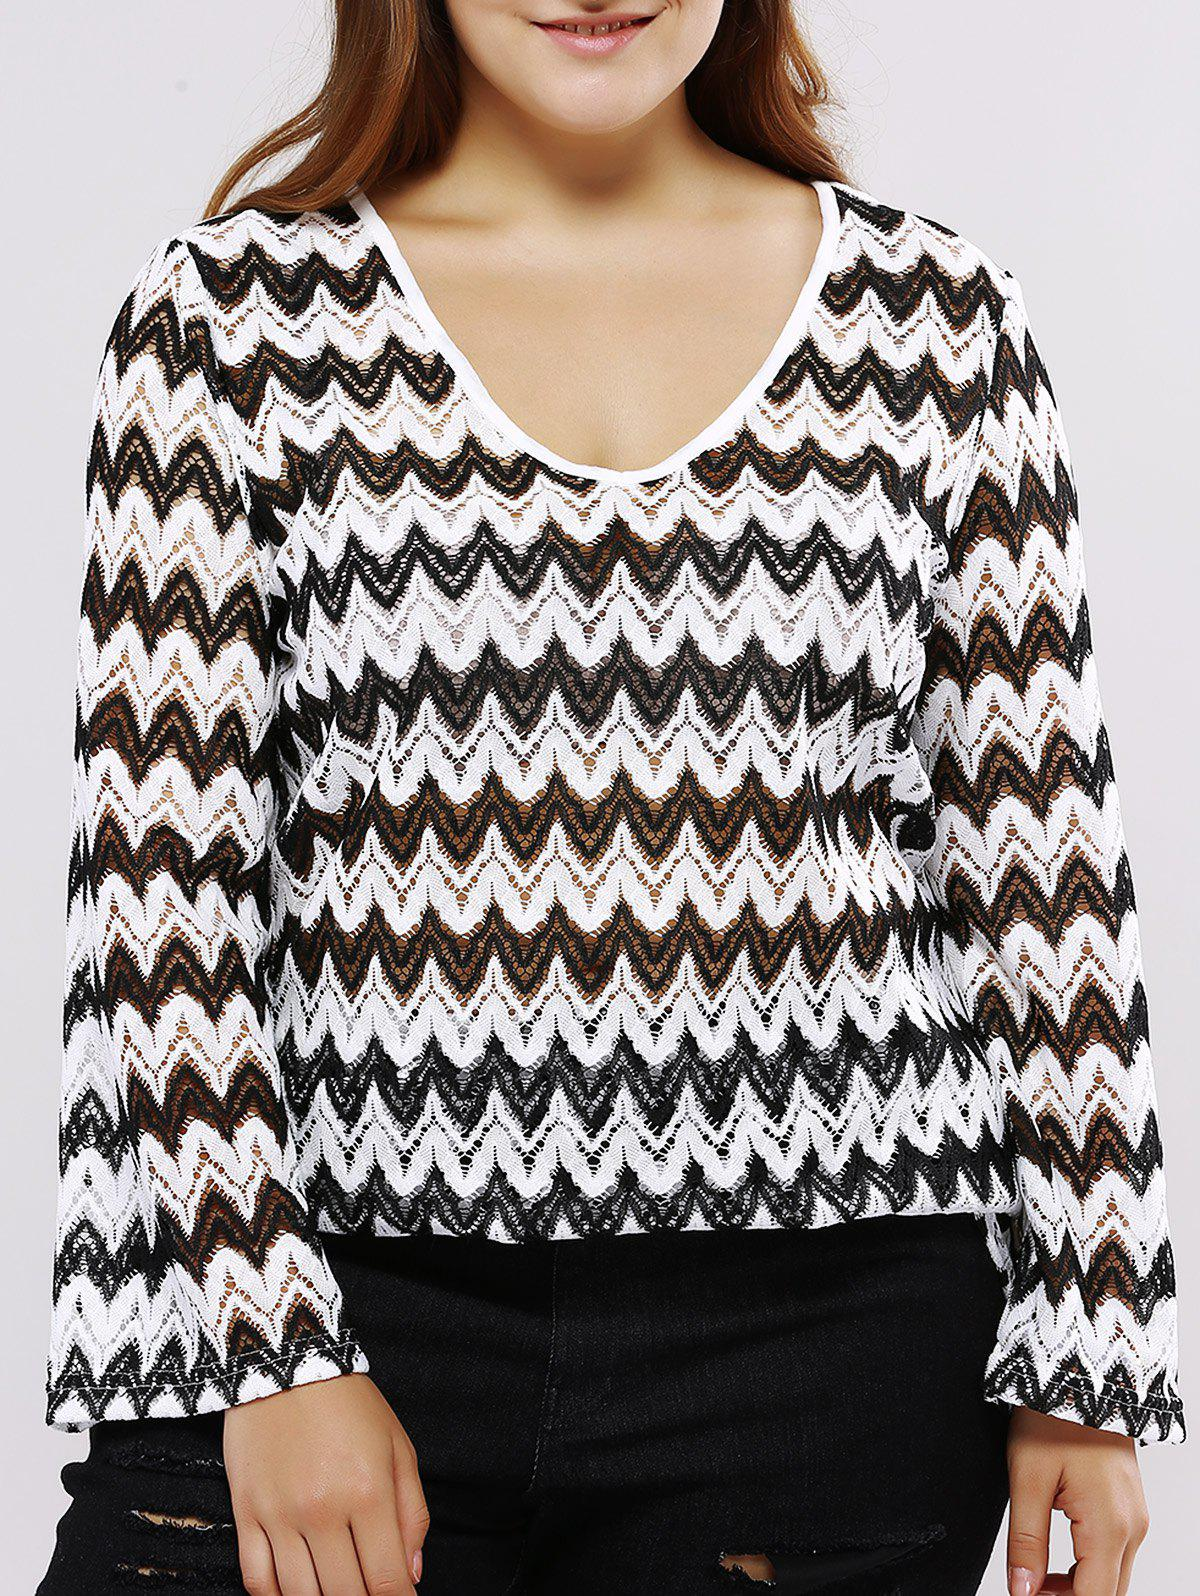 Oversized Casual Low Cut Chevron Pattern Blouse